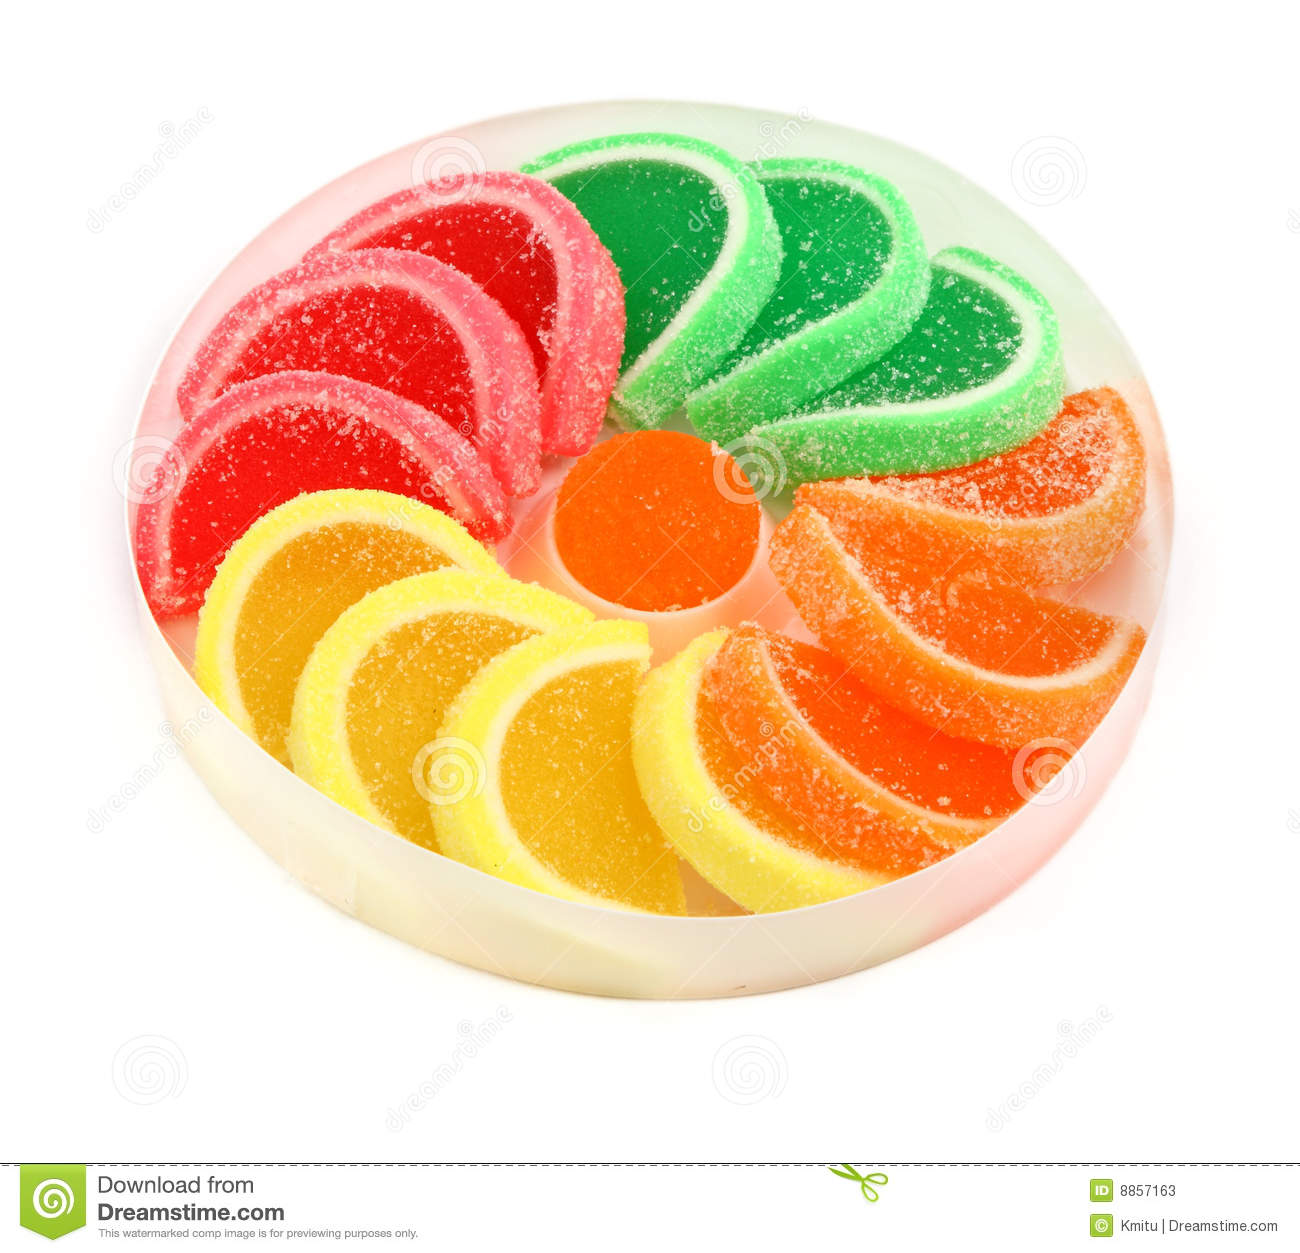 Fruit Jelly Sweets Stock Photos - Image: 8857163